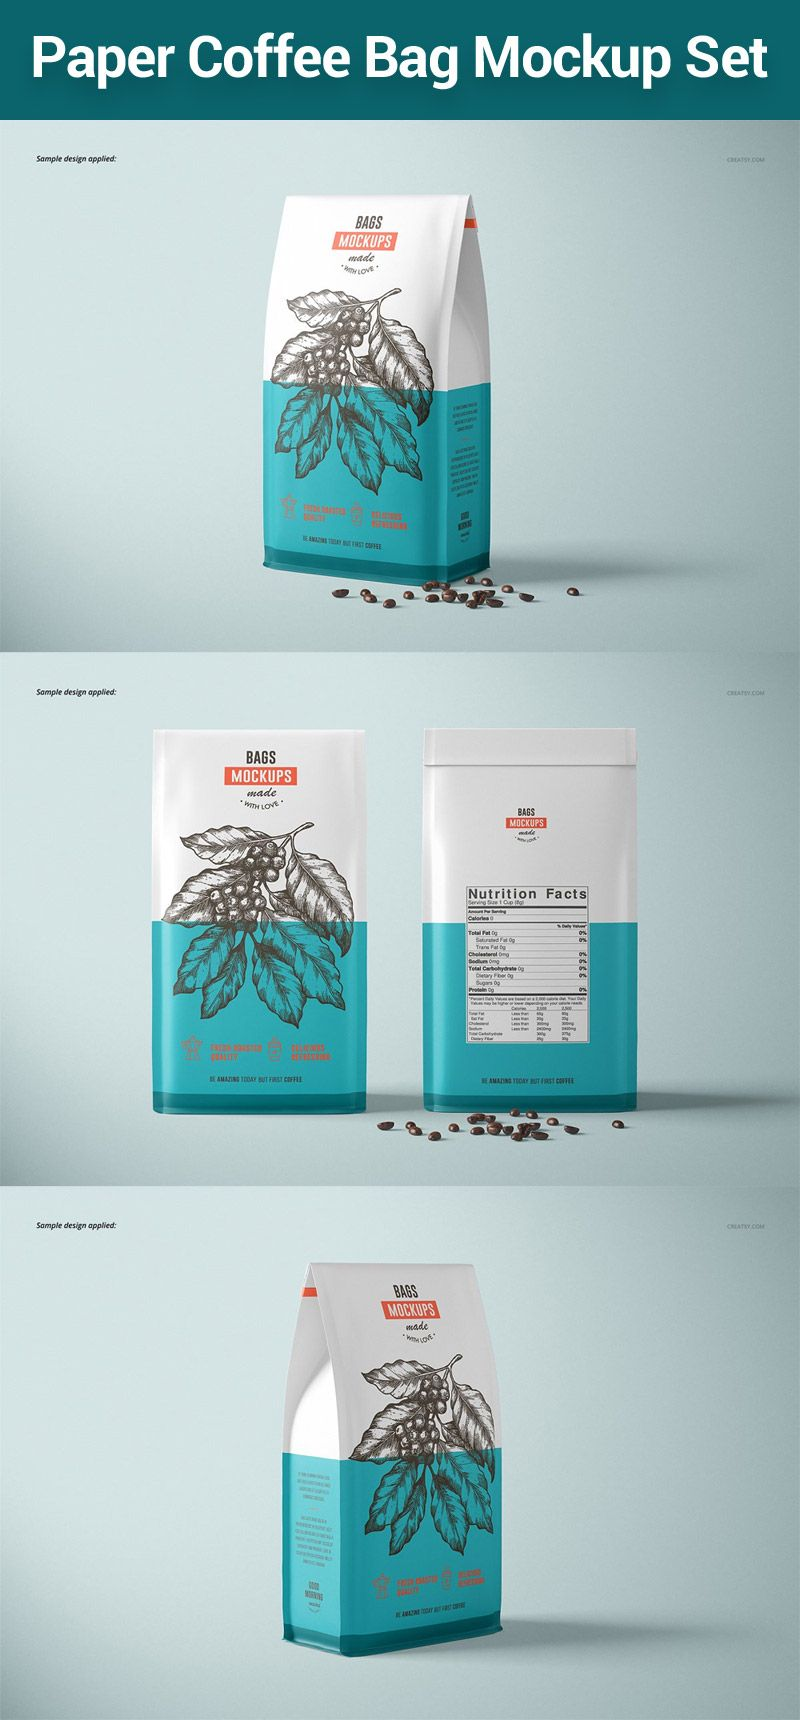 Download Paper Coffee Bag Mockup Set Bag Mockup Coffee Bag Design Coffee Bag